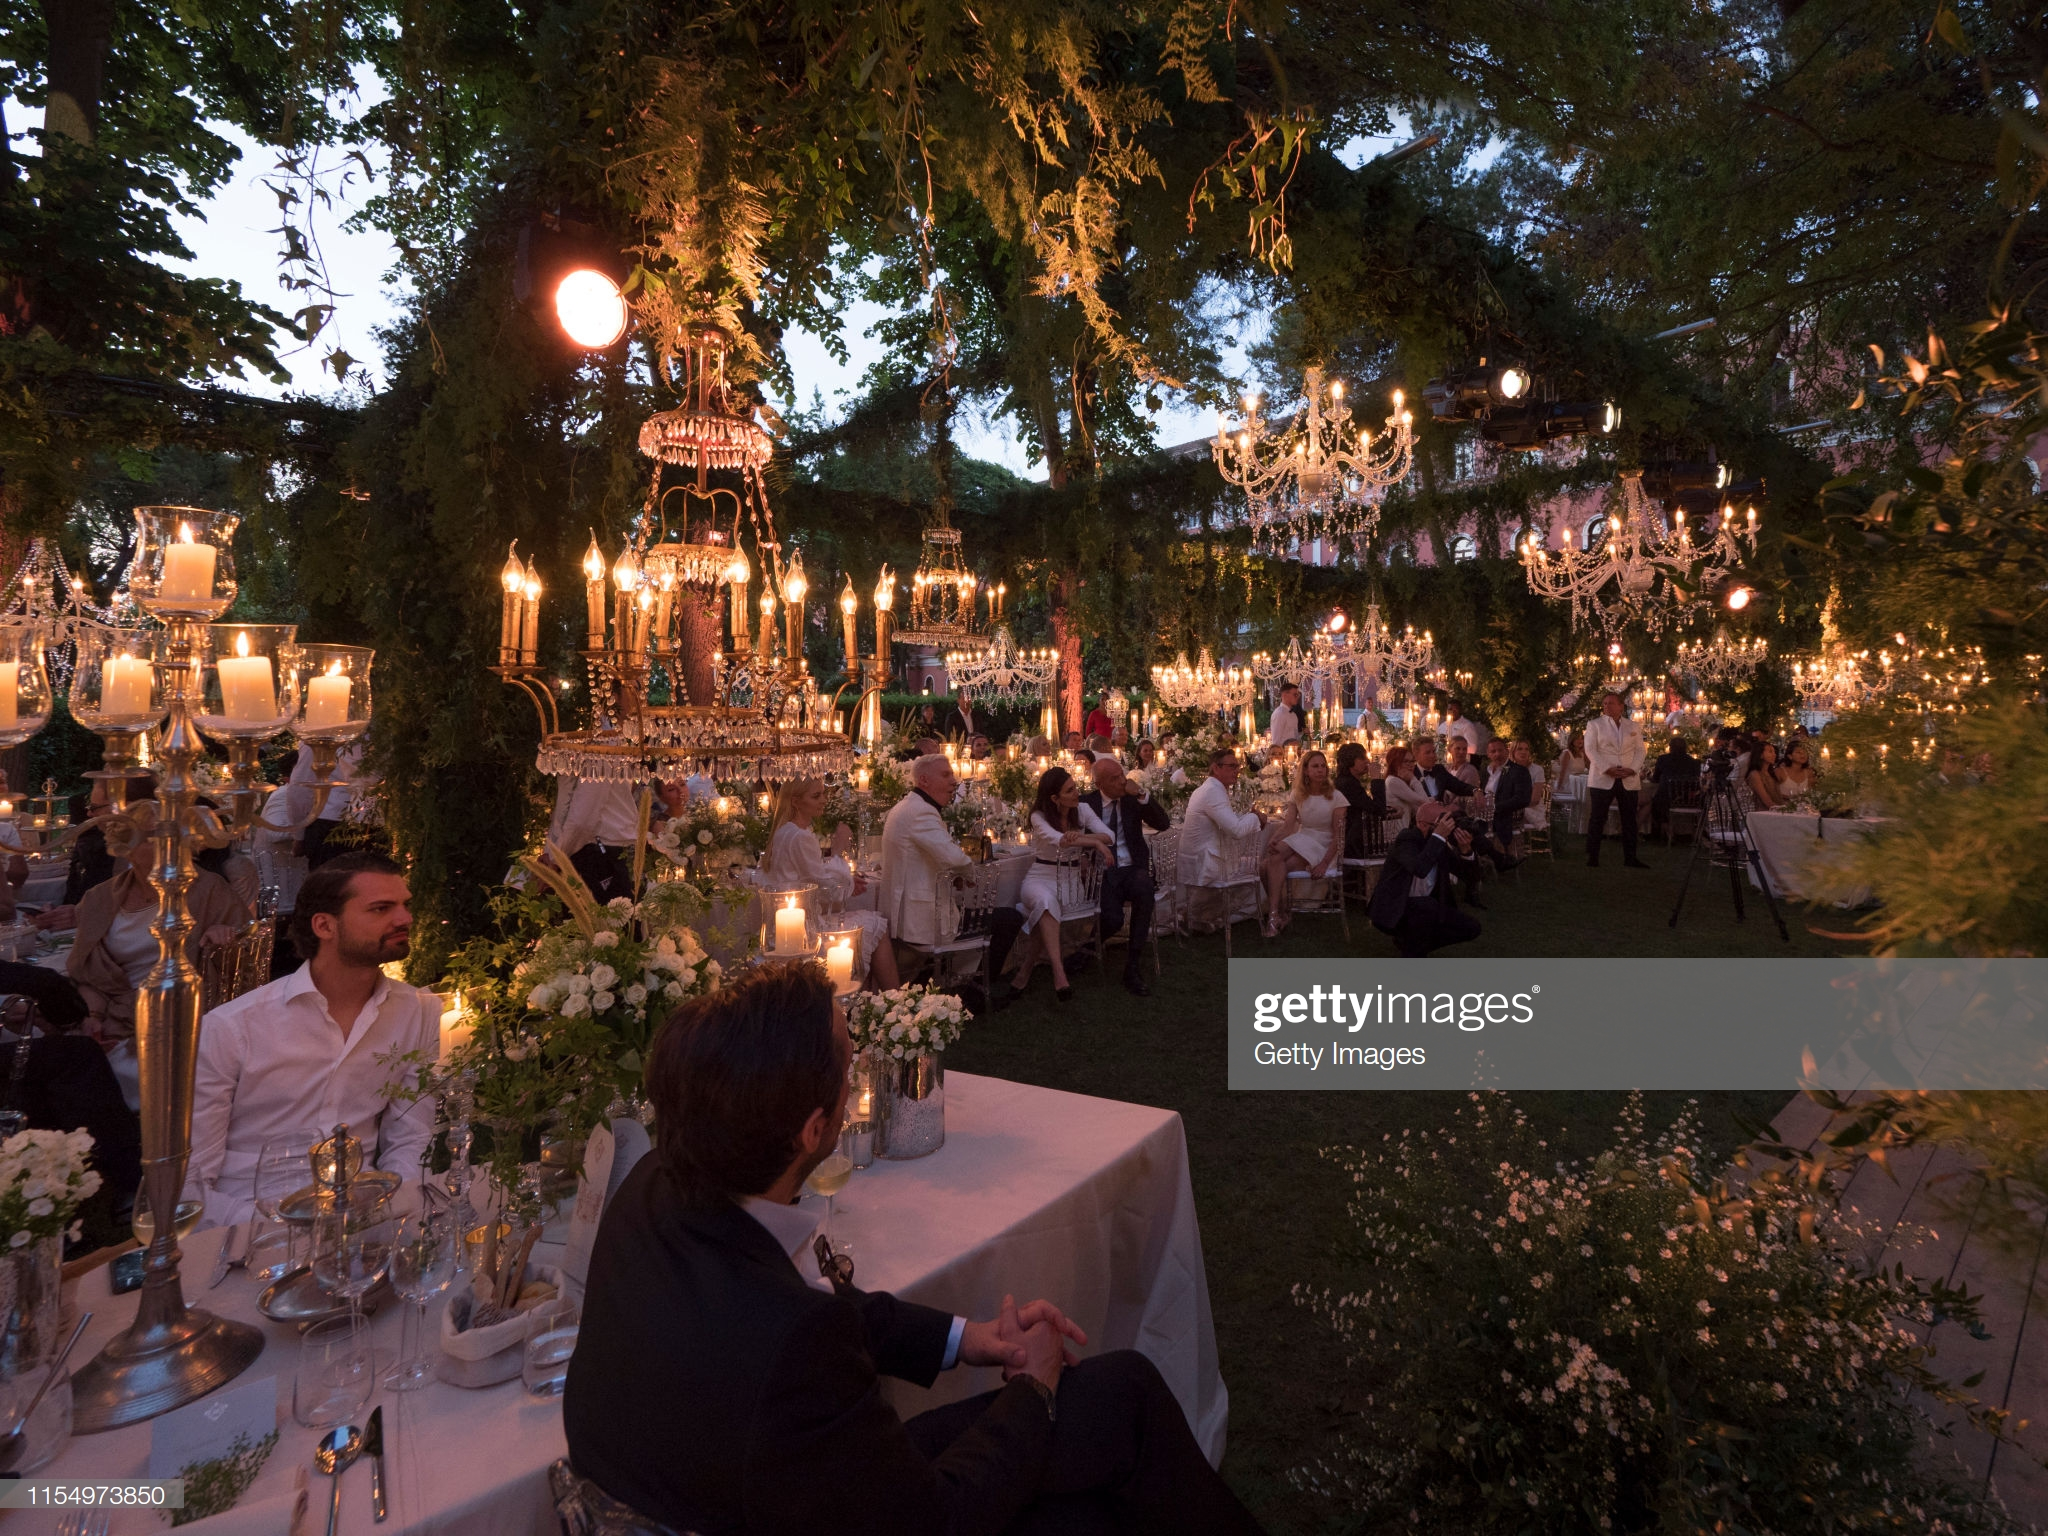 gettyimages-1154973850-2048x2048.jpg